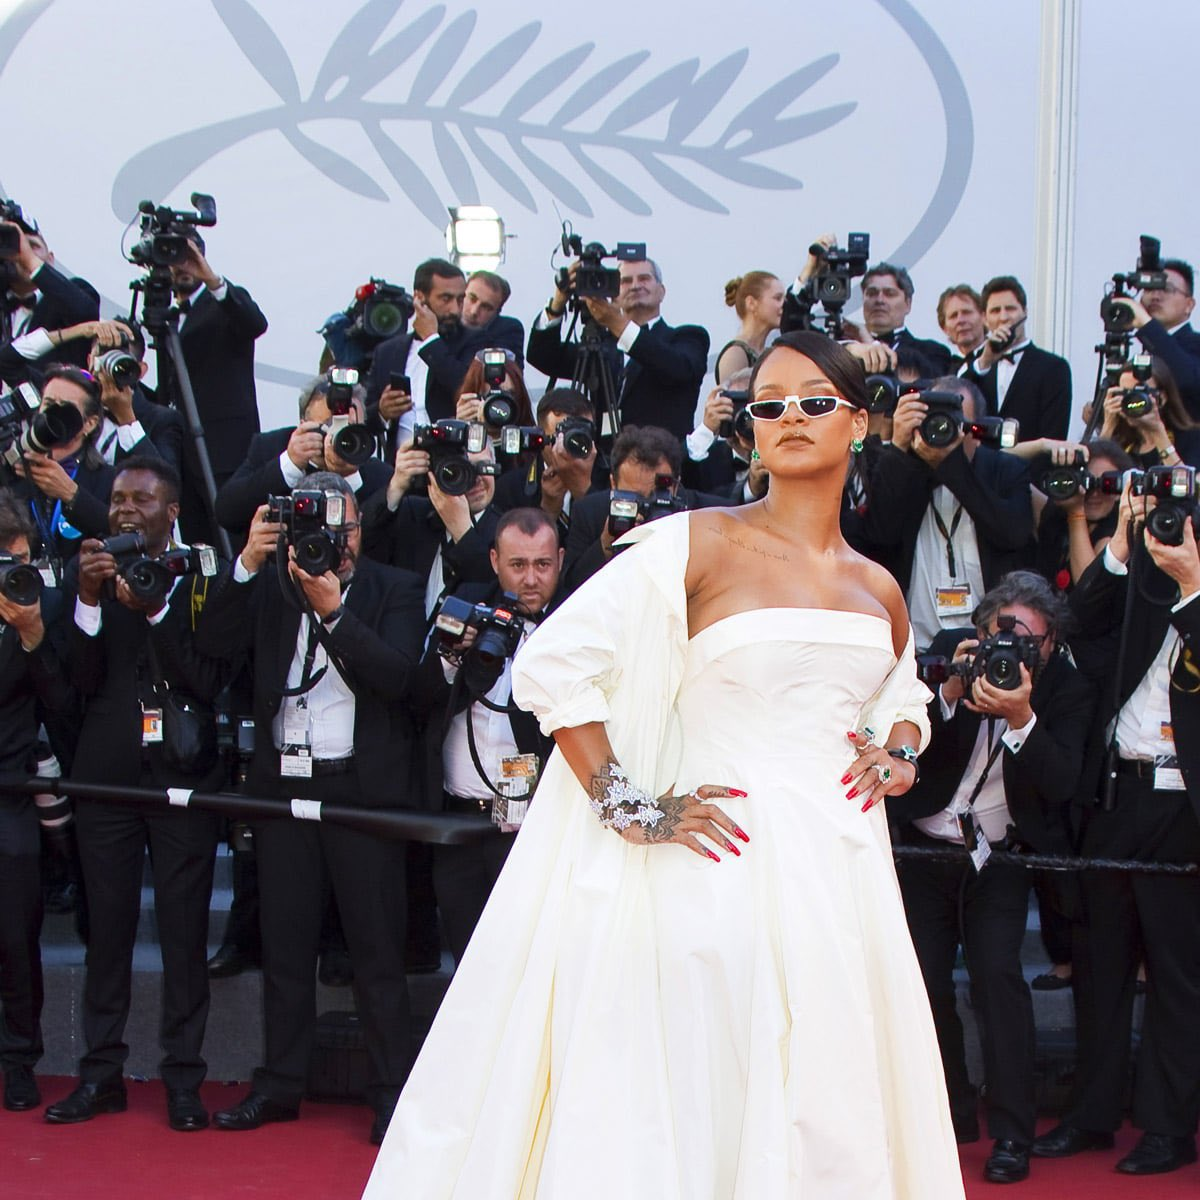 It s the 20th in the barbados, so happy 33rd birthday to THEE fashion and beauty mogul rihanna.